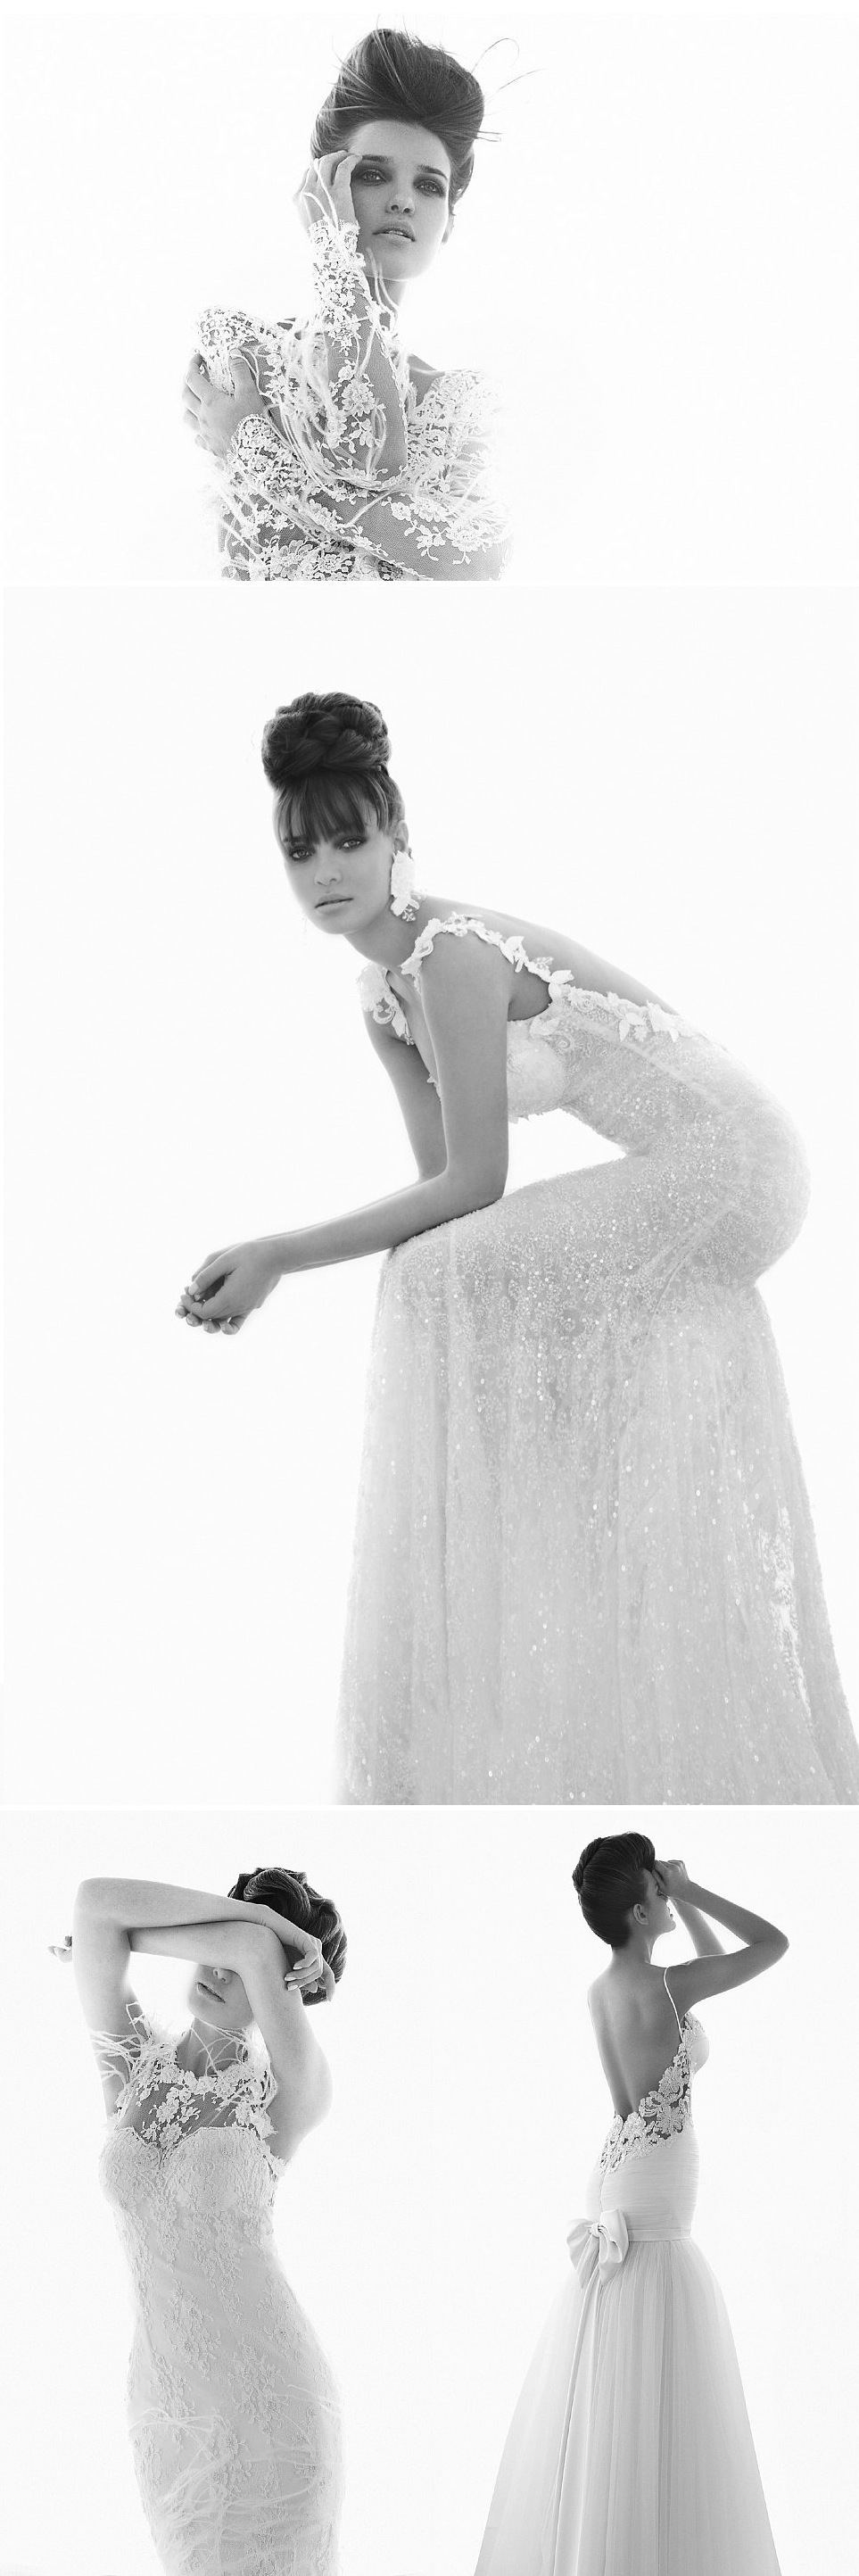 Berta-fashion-romantic-lace-wedding-dresses-for-daring-brides.full